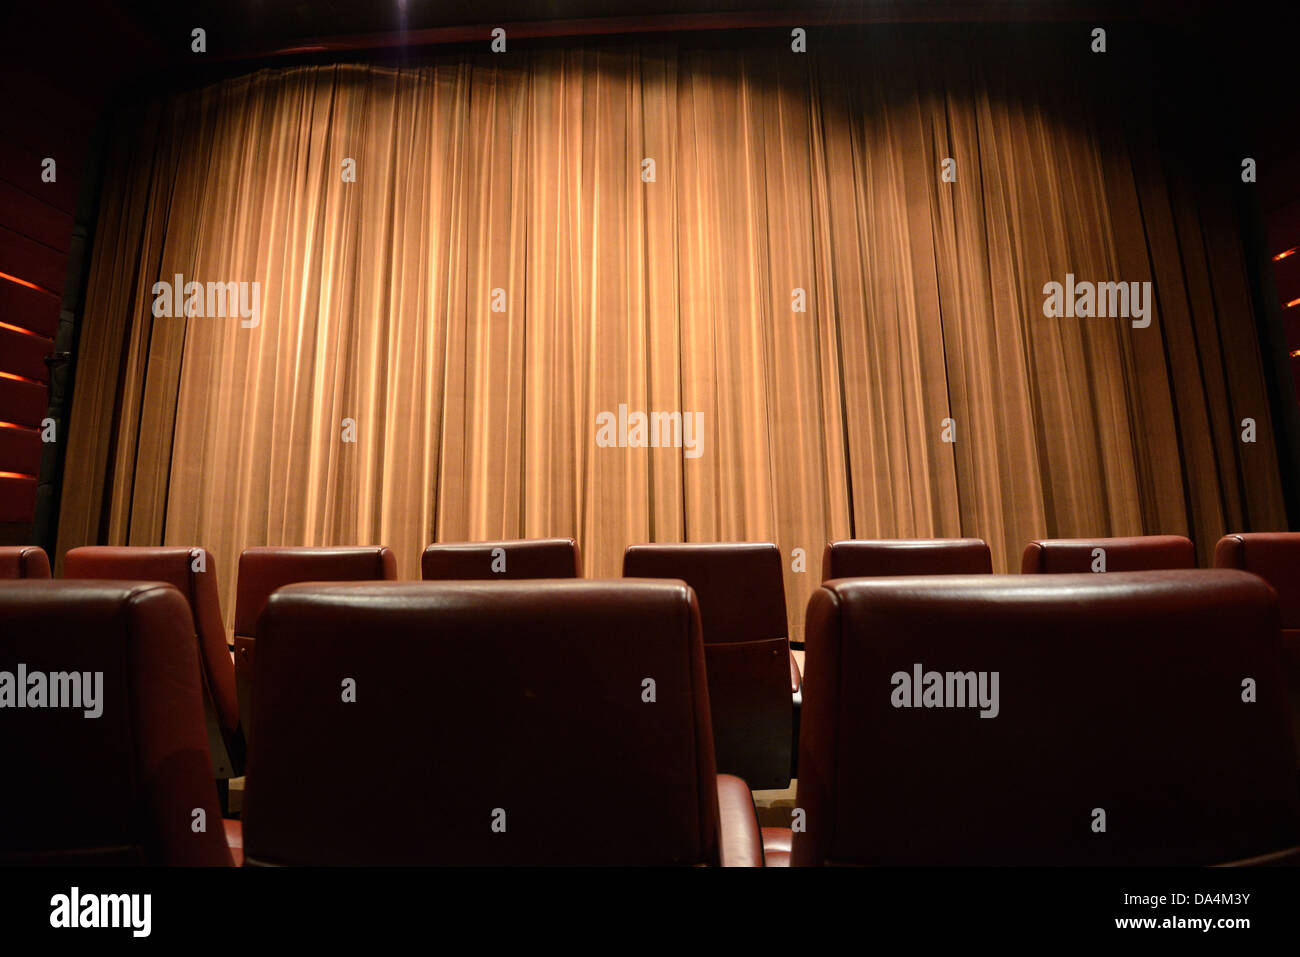 Ein Film-Theater-Interieur Stockbild